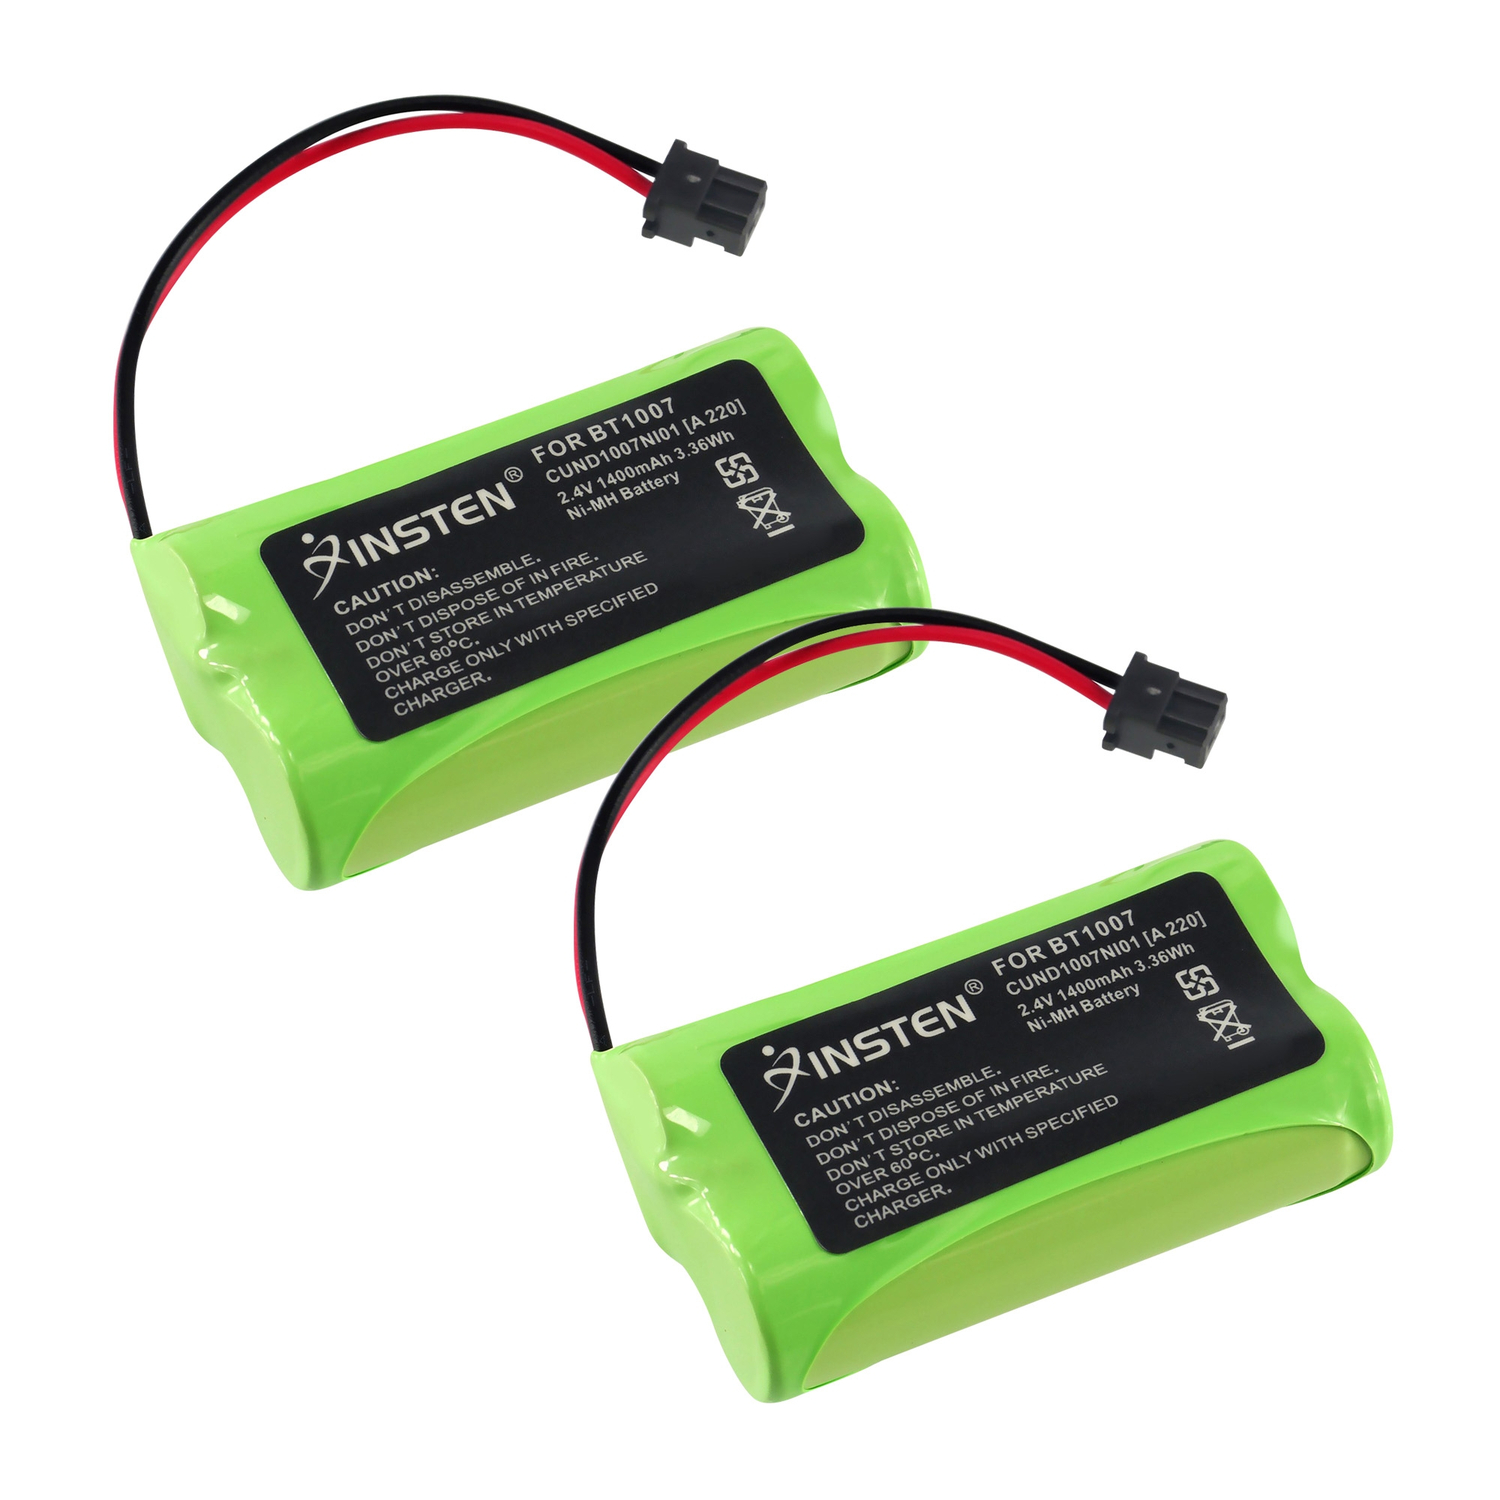 Insten 2-Pack Uniden BT-1007 BT-1015 Cordless Home Phone Replacement battery 1400 mAh